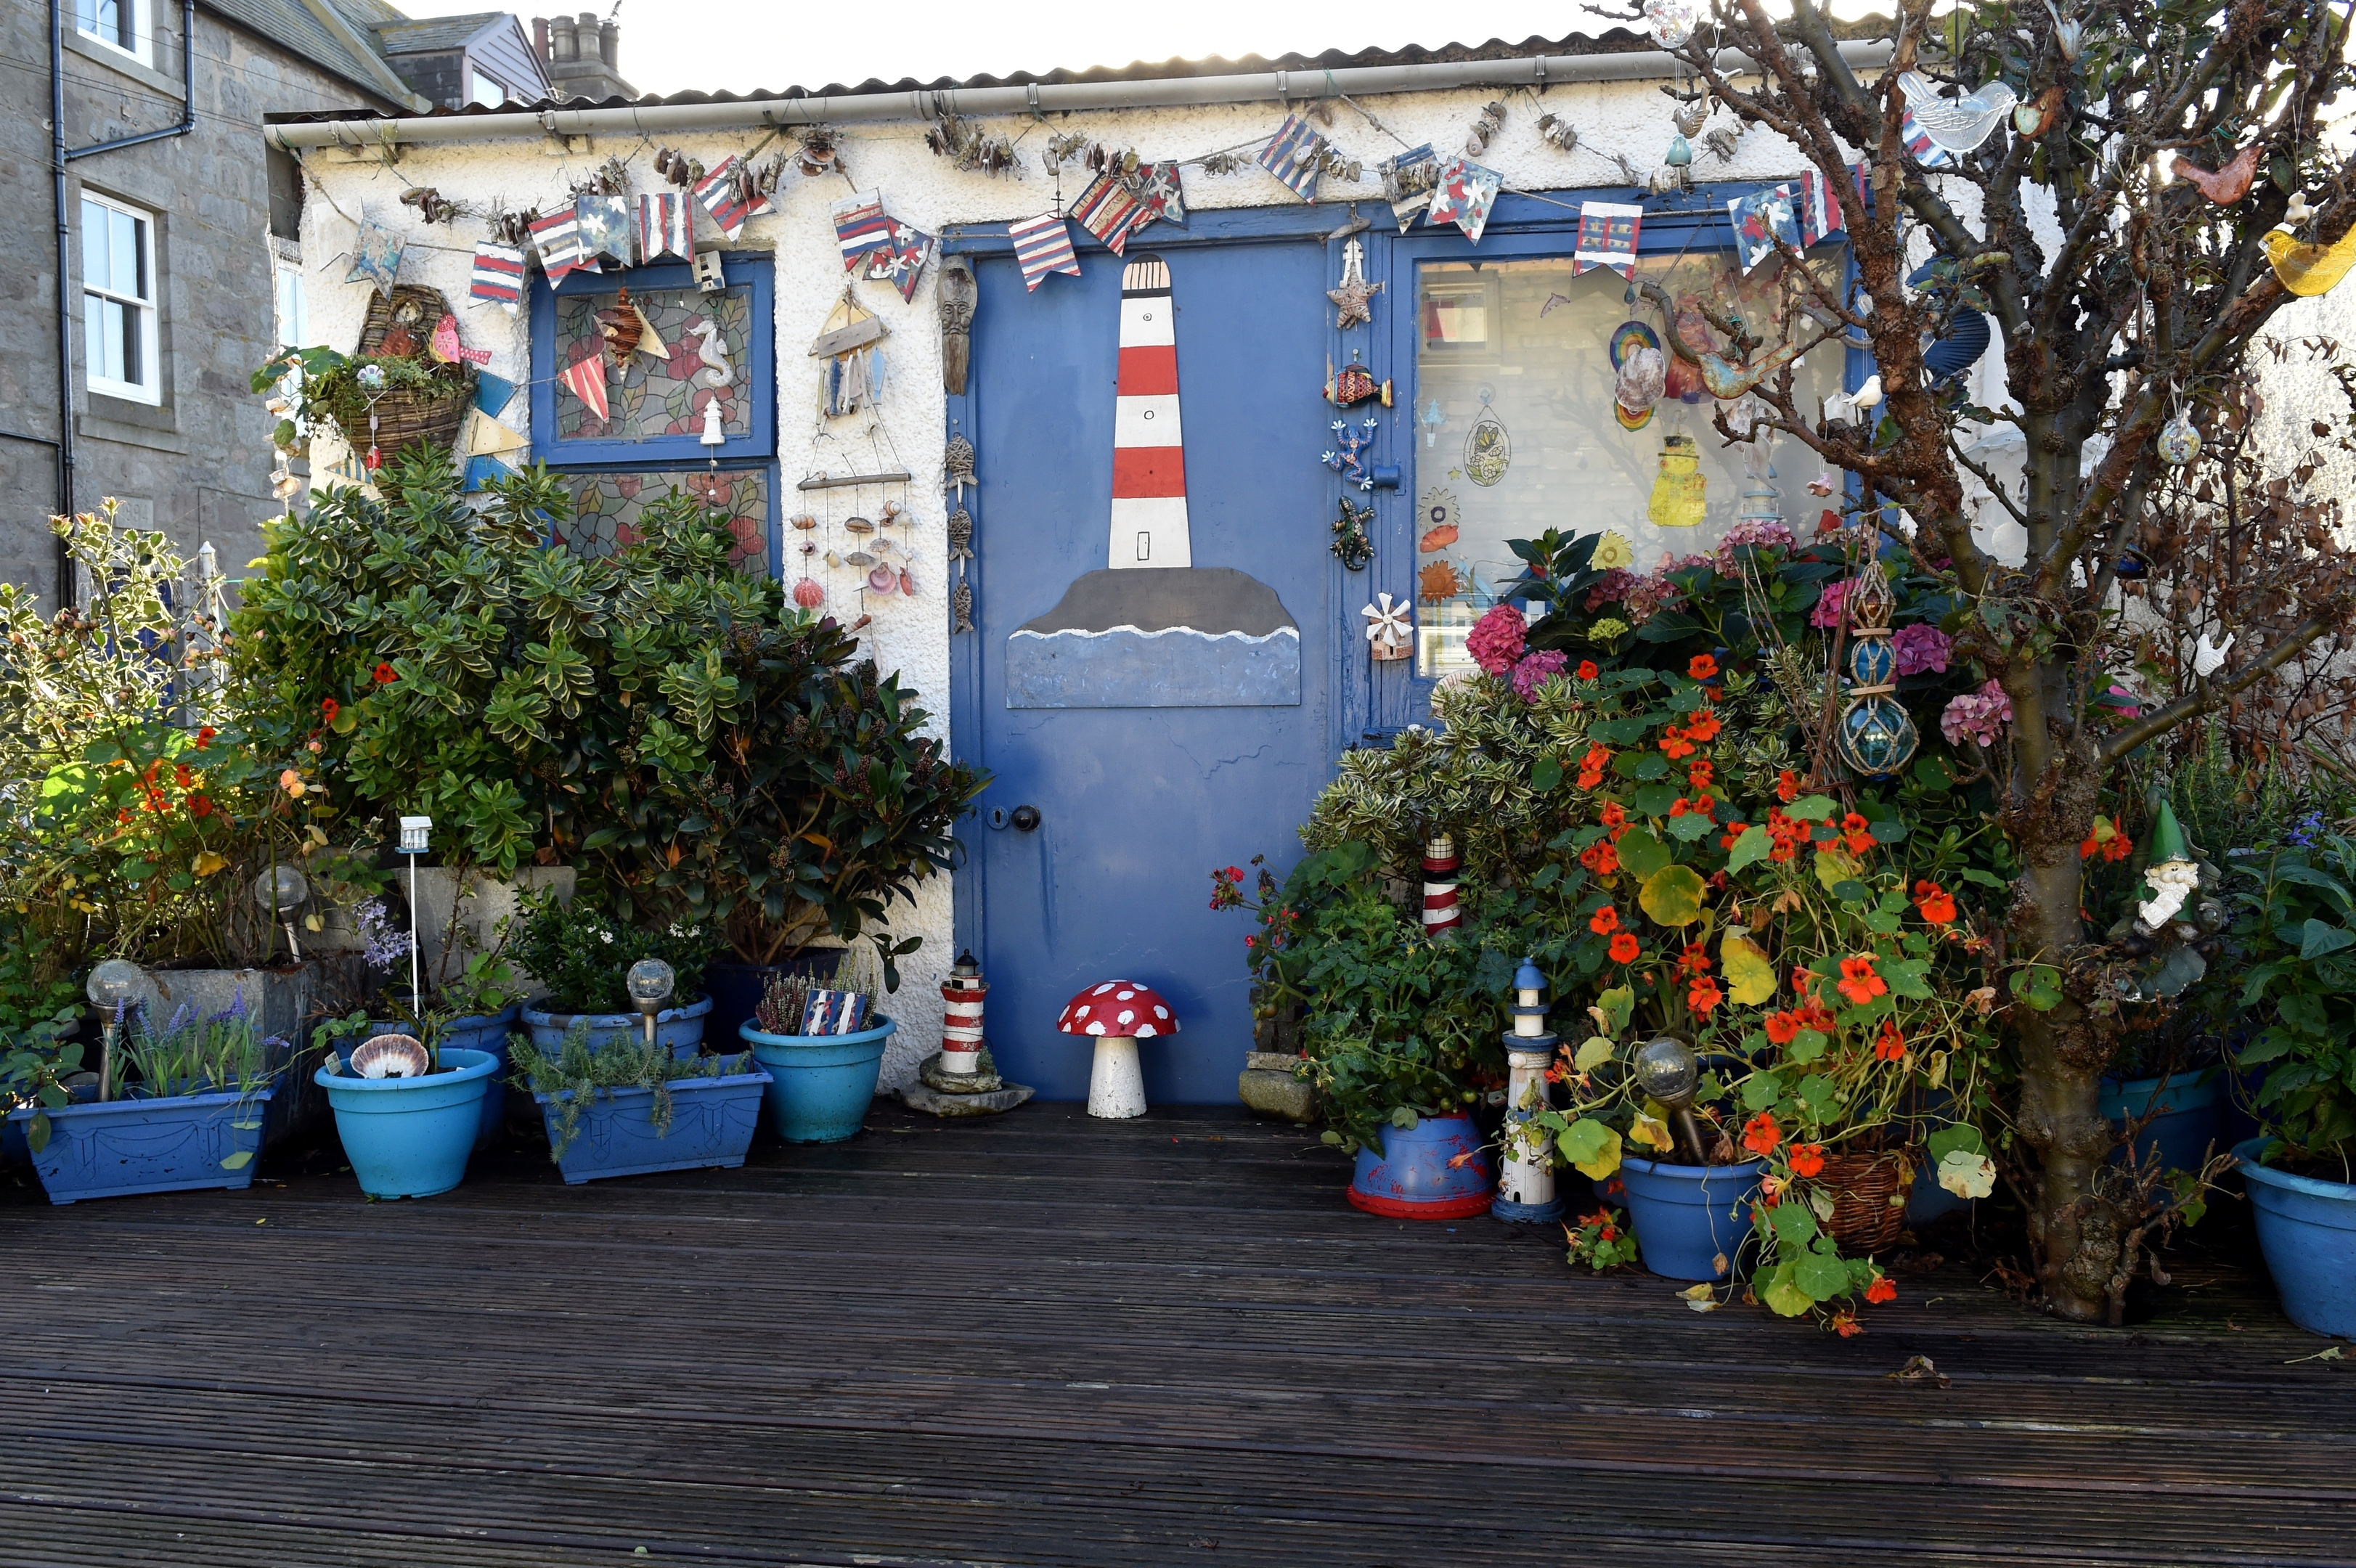 The houses are famed for their colourful character and sense of originality